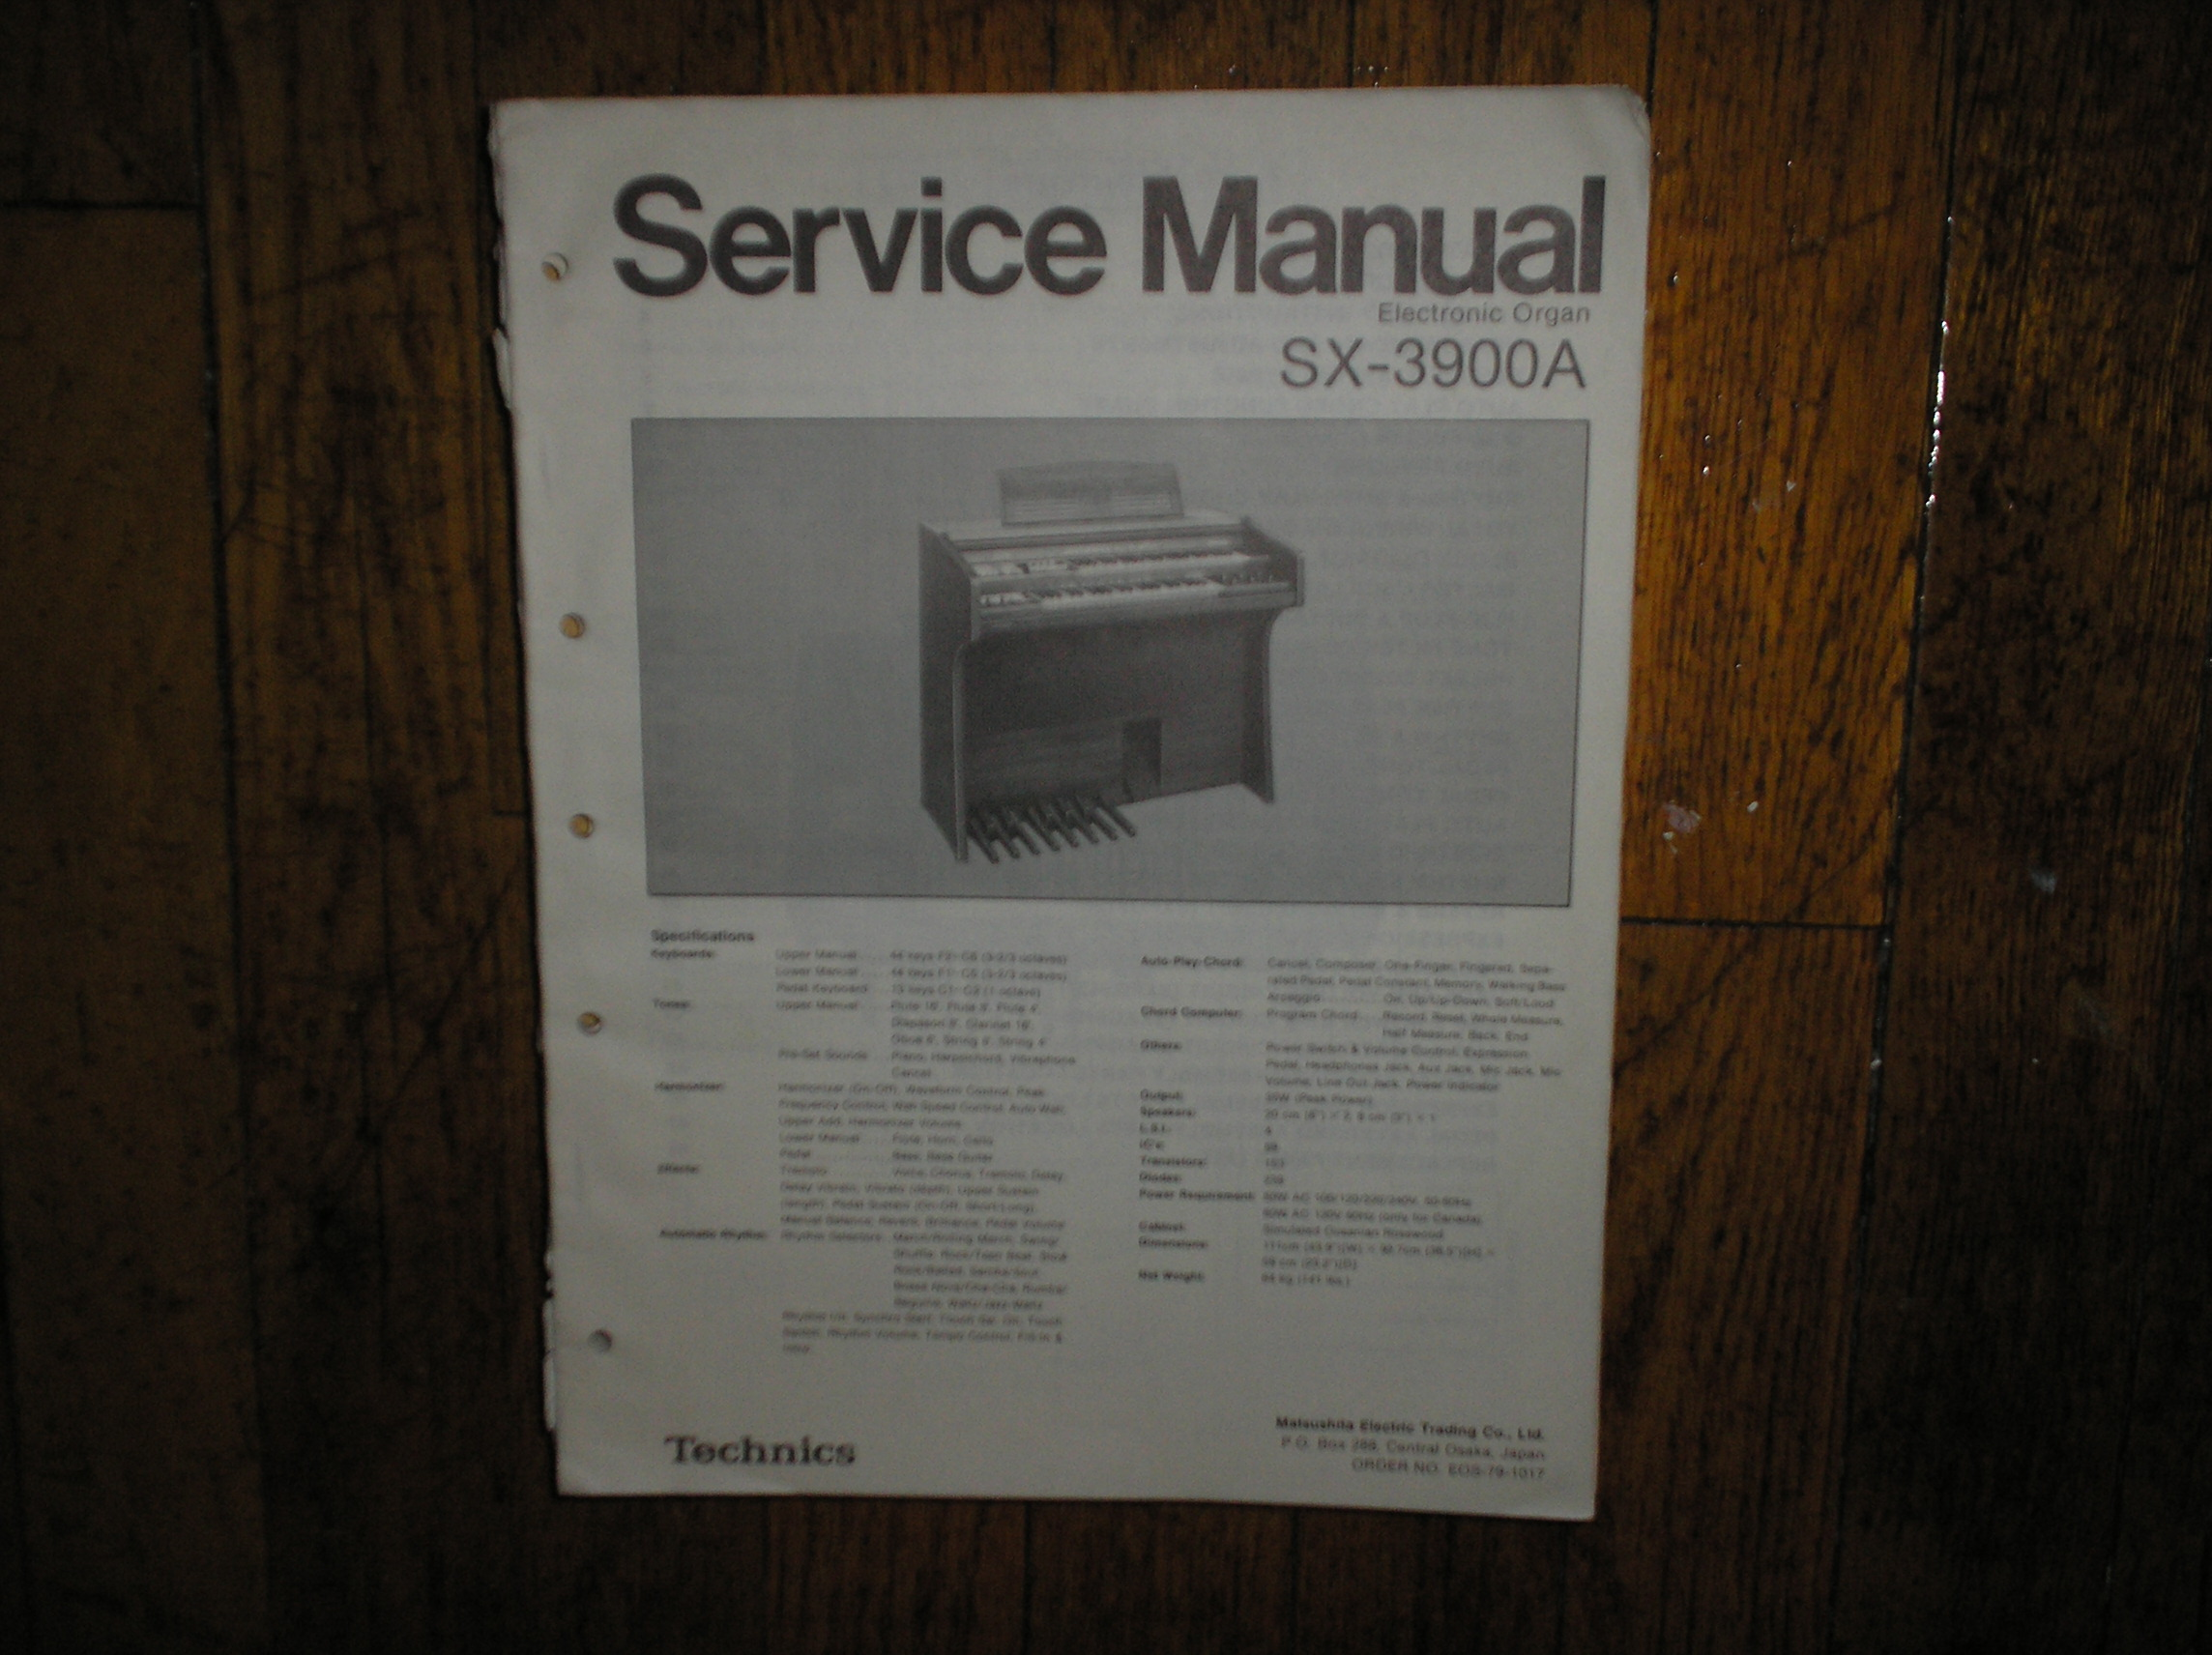 SX-3900A Electronic Organ Service Manual